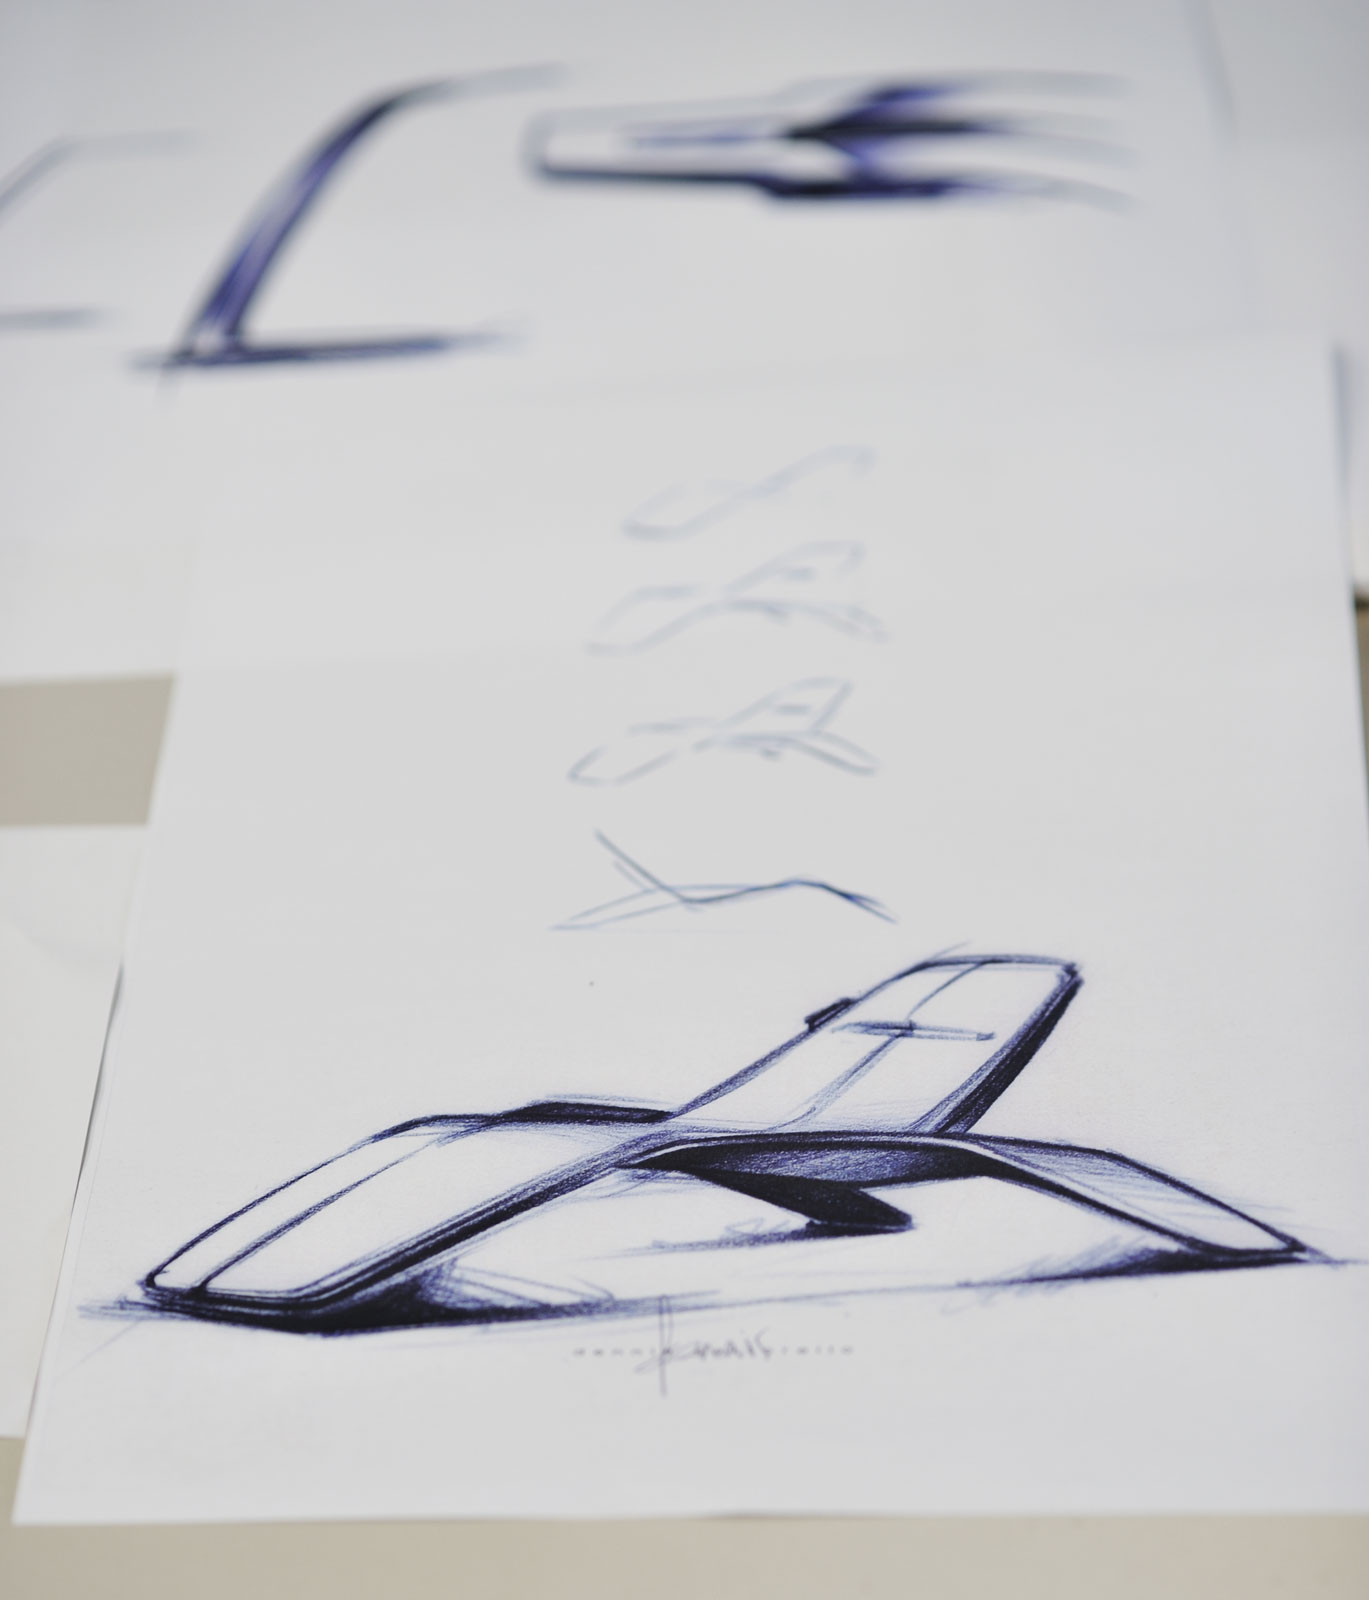 Ford design Lounge Chair Design Sketches Car Body Design